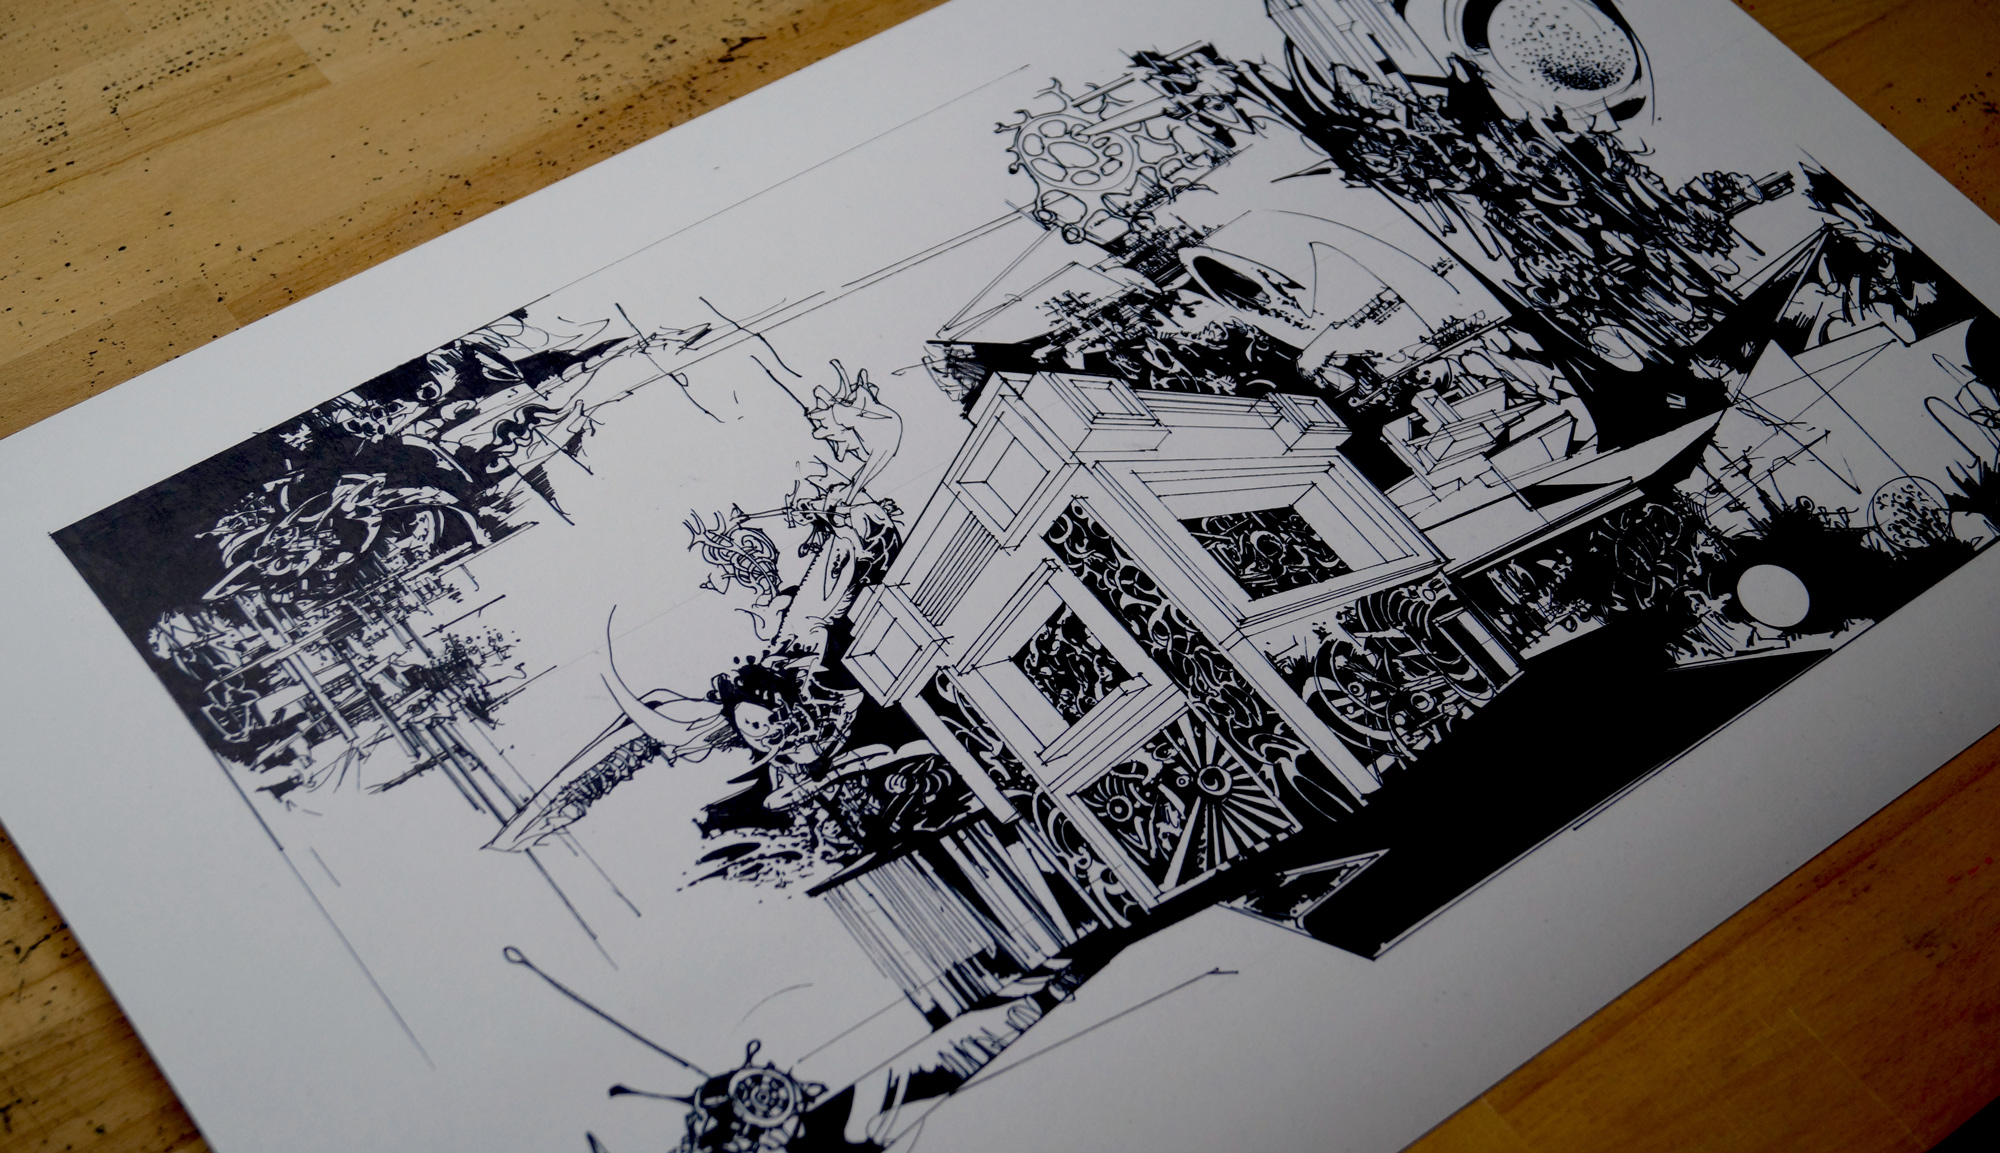 posters-prints, giclee-print, abstract, expressive, geometric, landscape, monochrome, surrealistic, architecture, botany, nature, black, white, ink, paper, abstract-forms, architectural, black-and-white, buildings, interior, interior-design, modern, modern-art, scandinavien, Buy original high quality art. Paintings, drawings, limited edition prints & posters by talented artists.